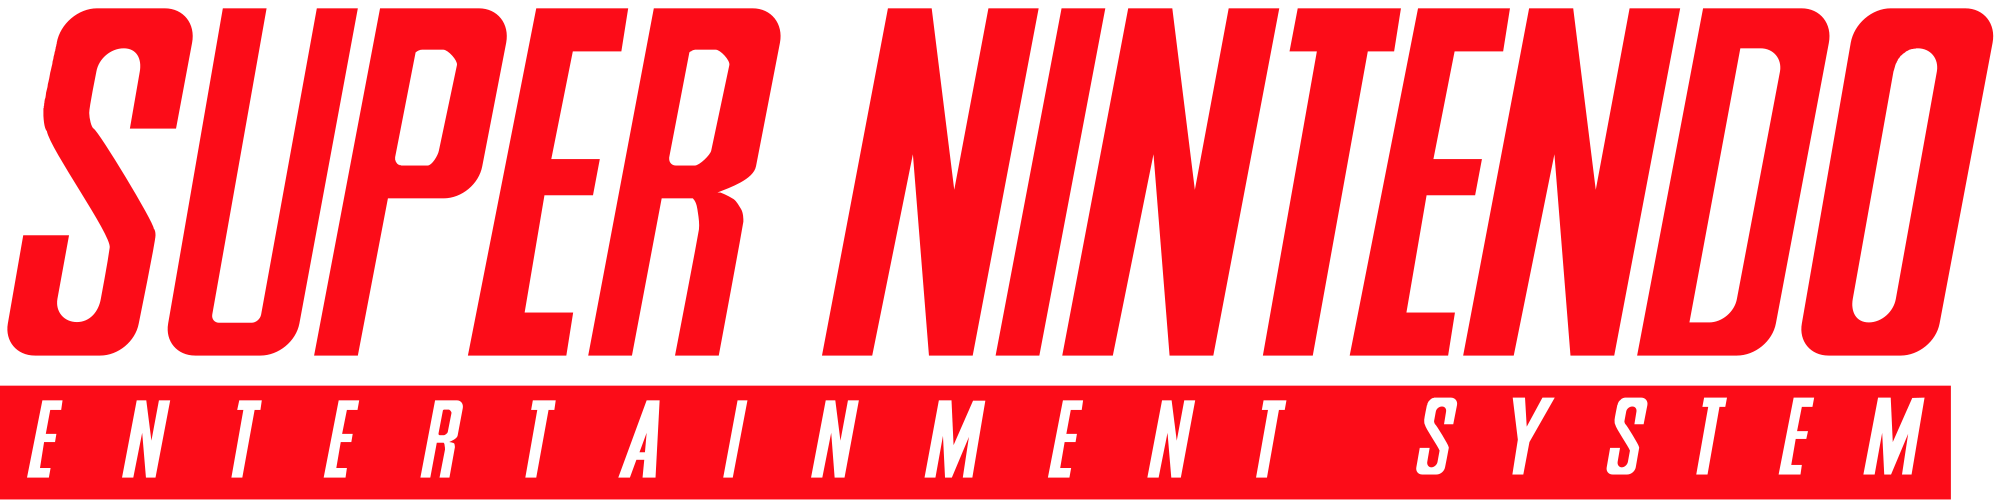 Super Nintendo Entertaiment System Nintendo, Logotipo